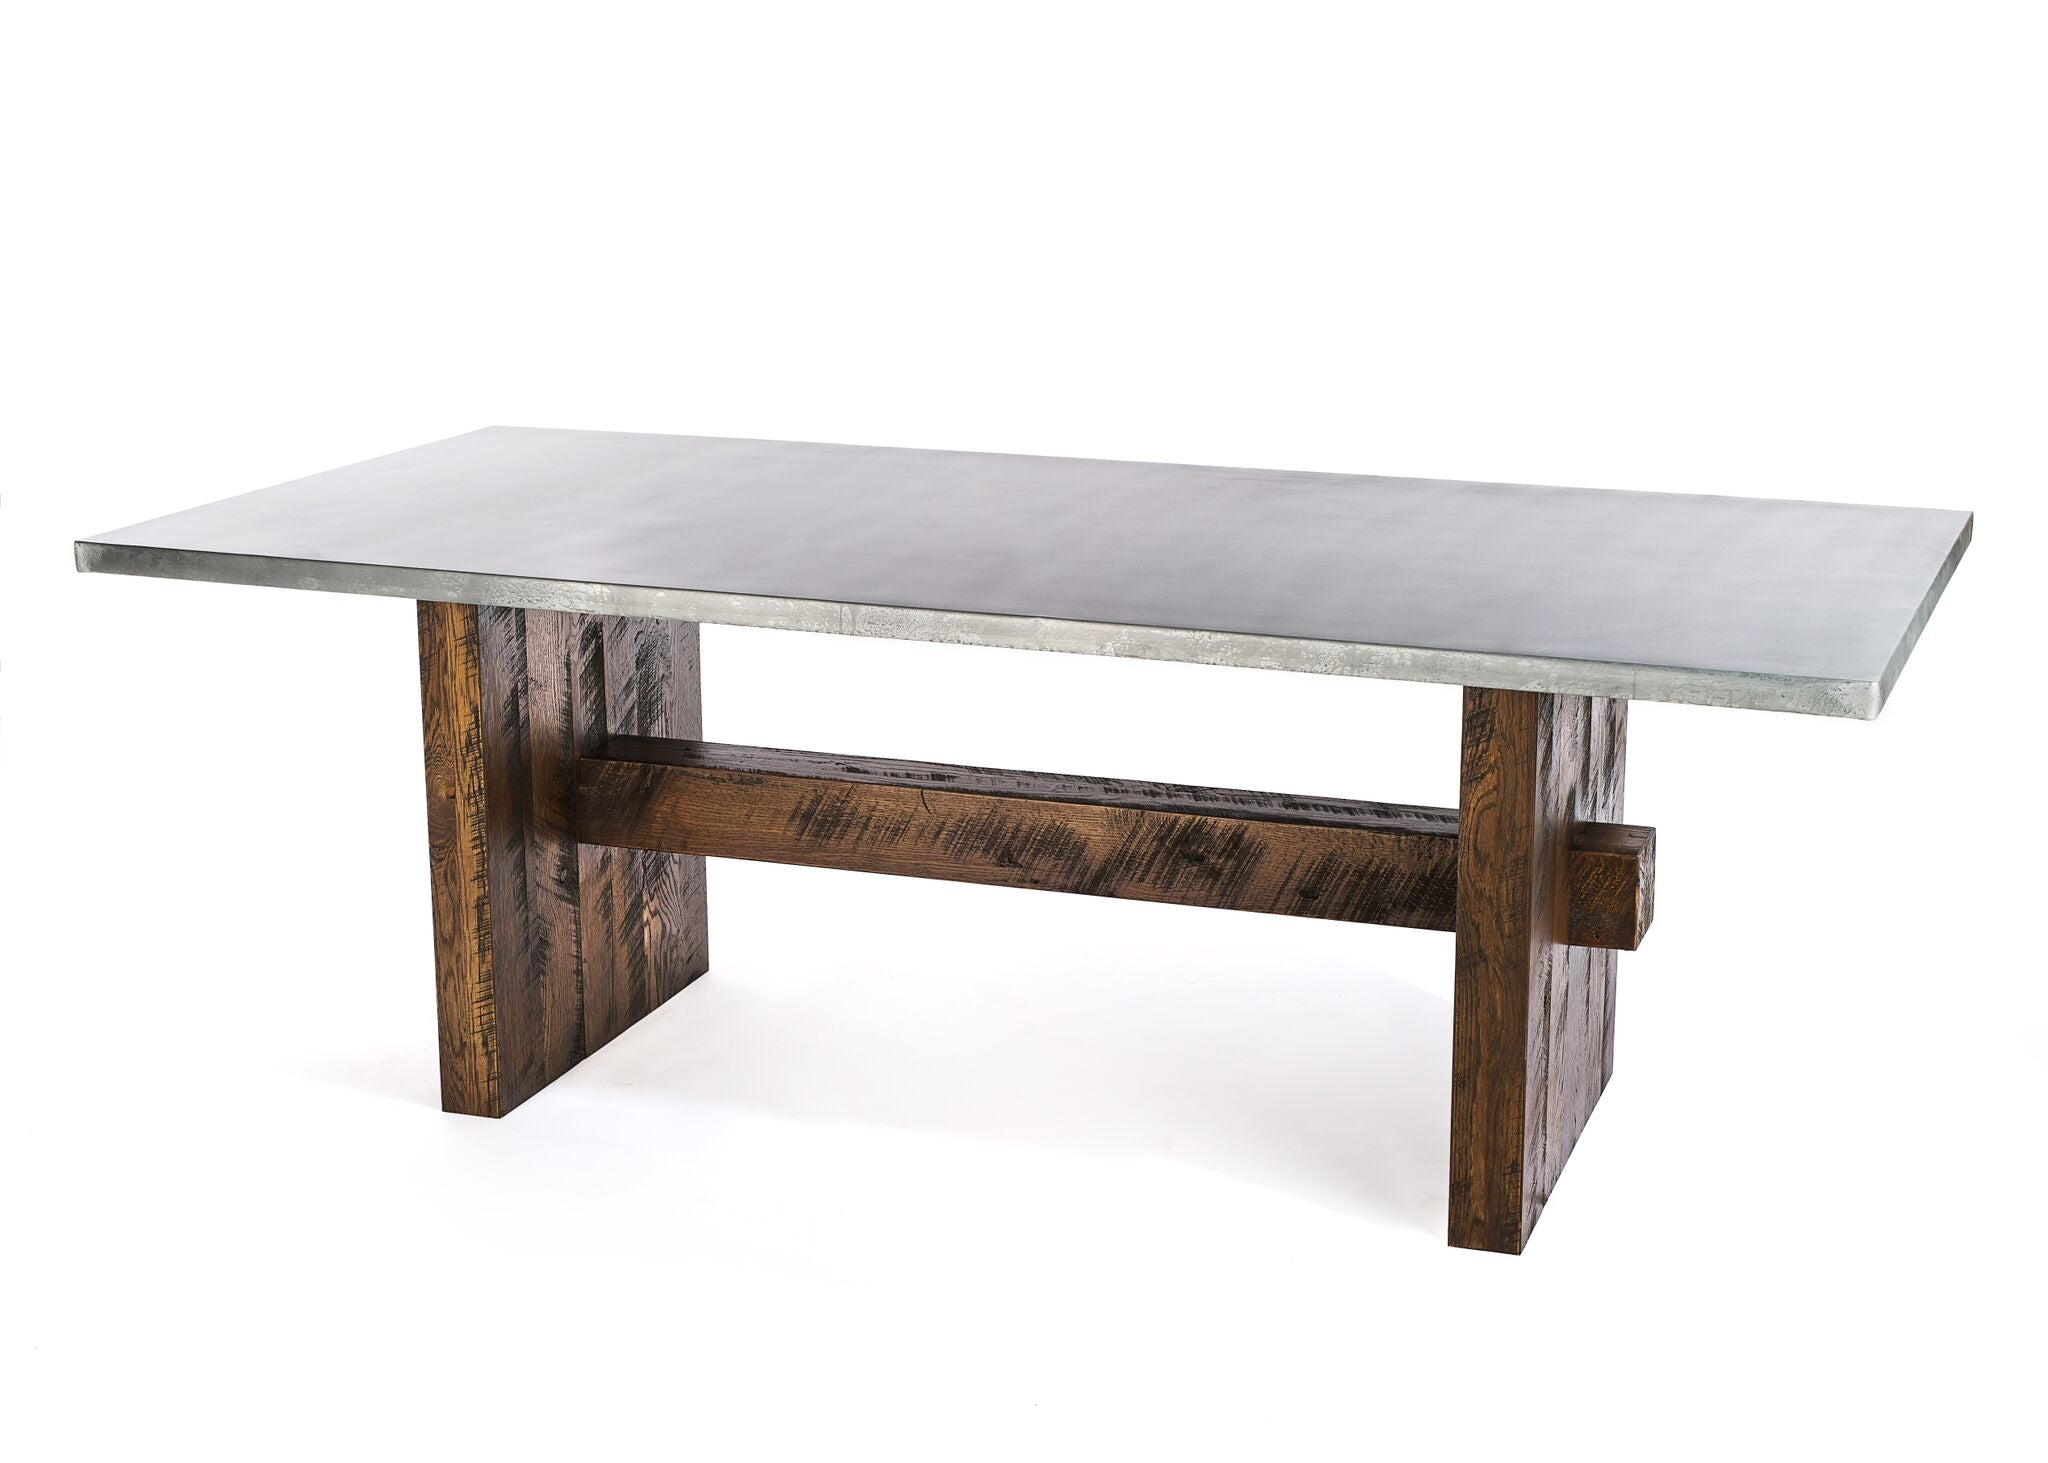 "Zinc Rectangular Table | Redford Trestle Table | BLACKENED BRONZE | White Wash on Reclaimed Oak | 96""L 39""W 30""H 